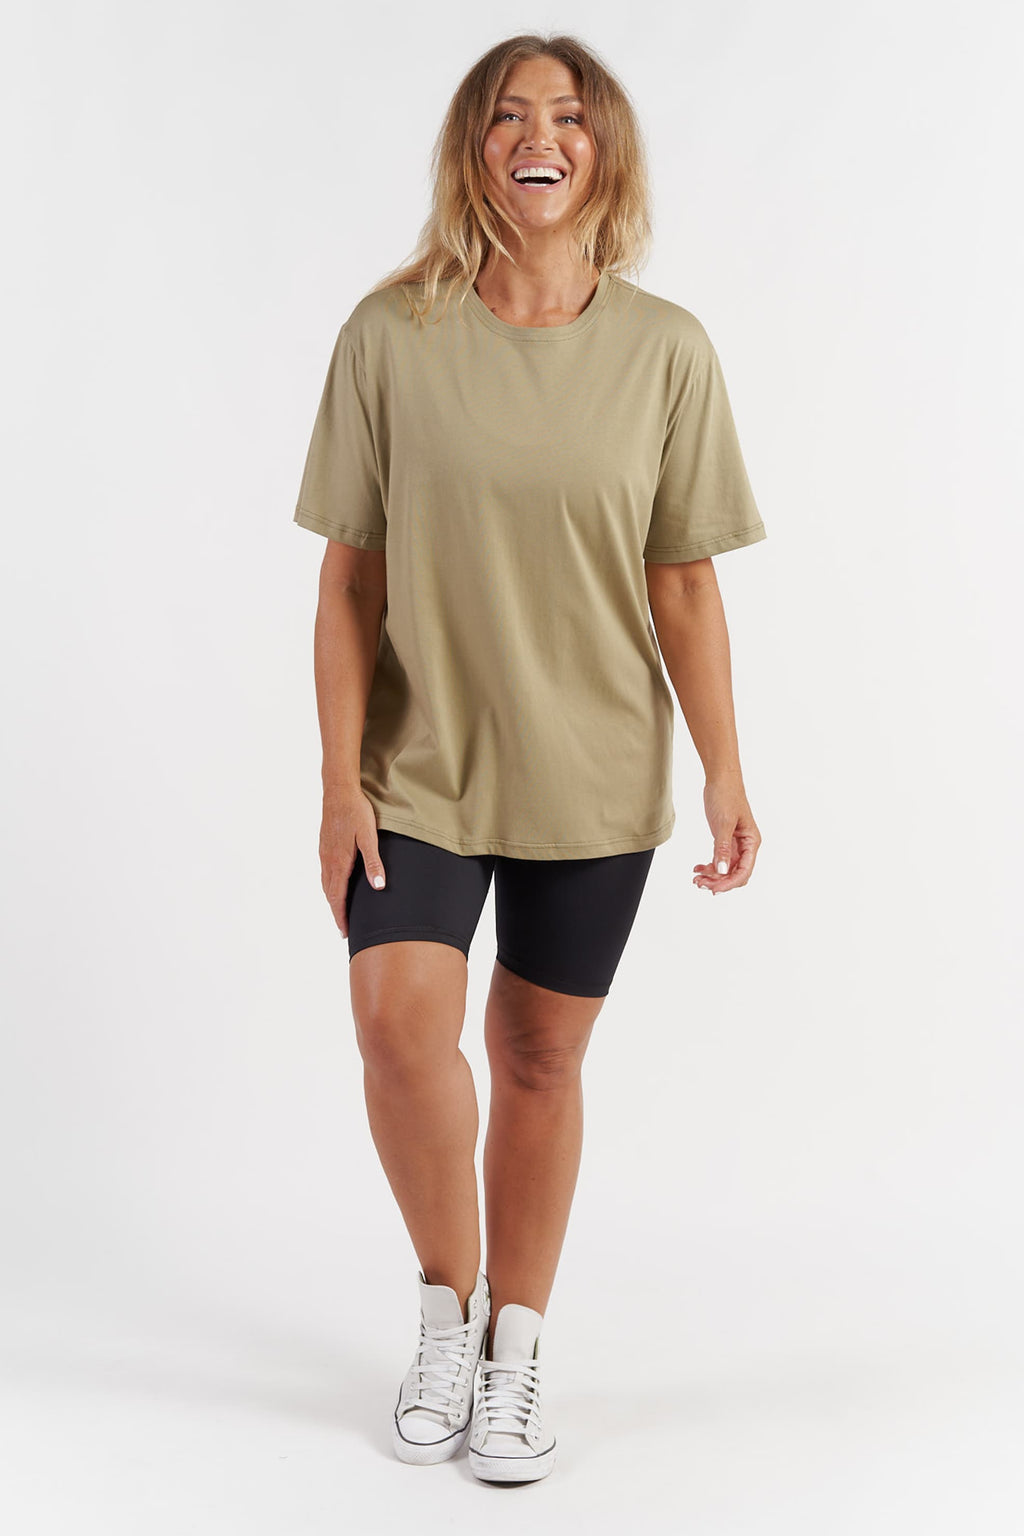 activewear-oversized-tee-olive-large-front